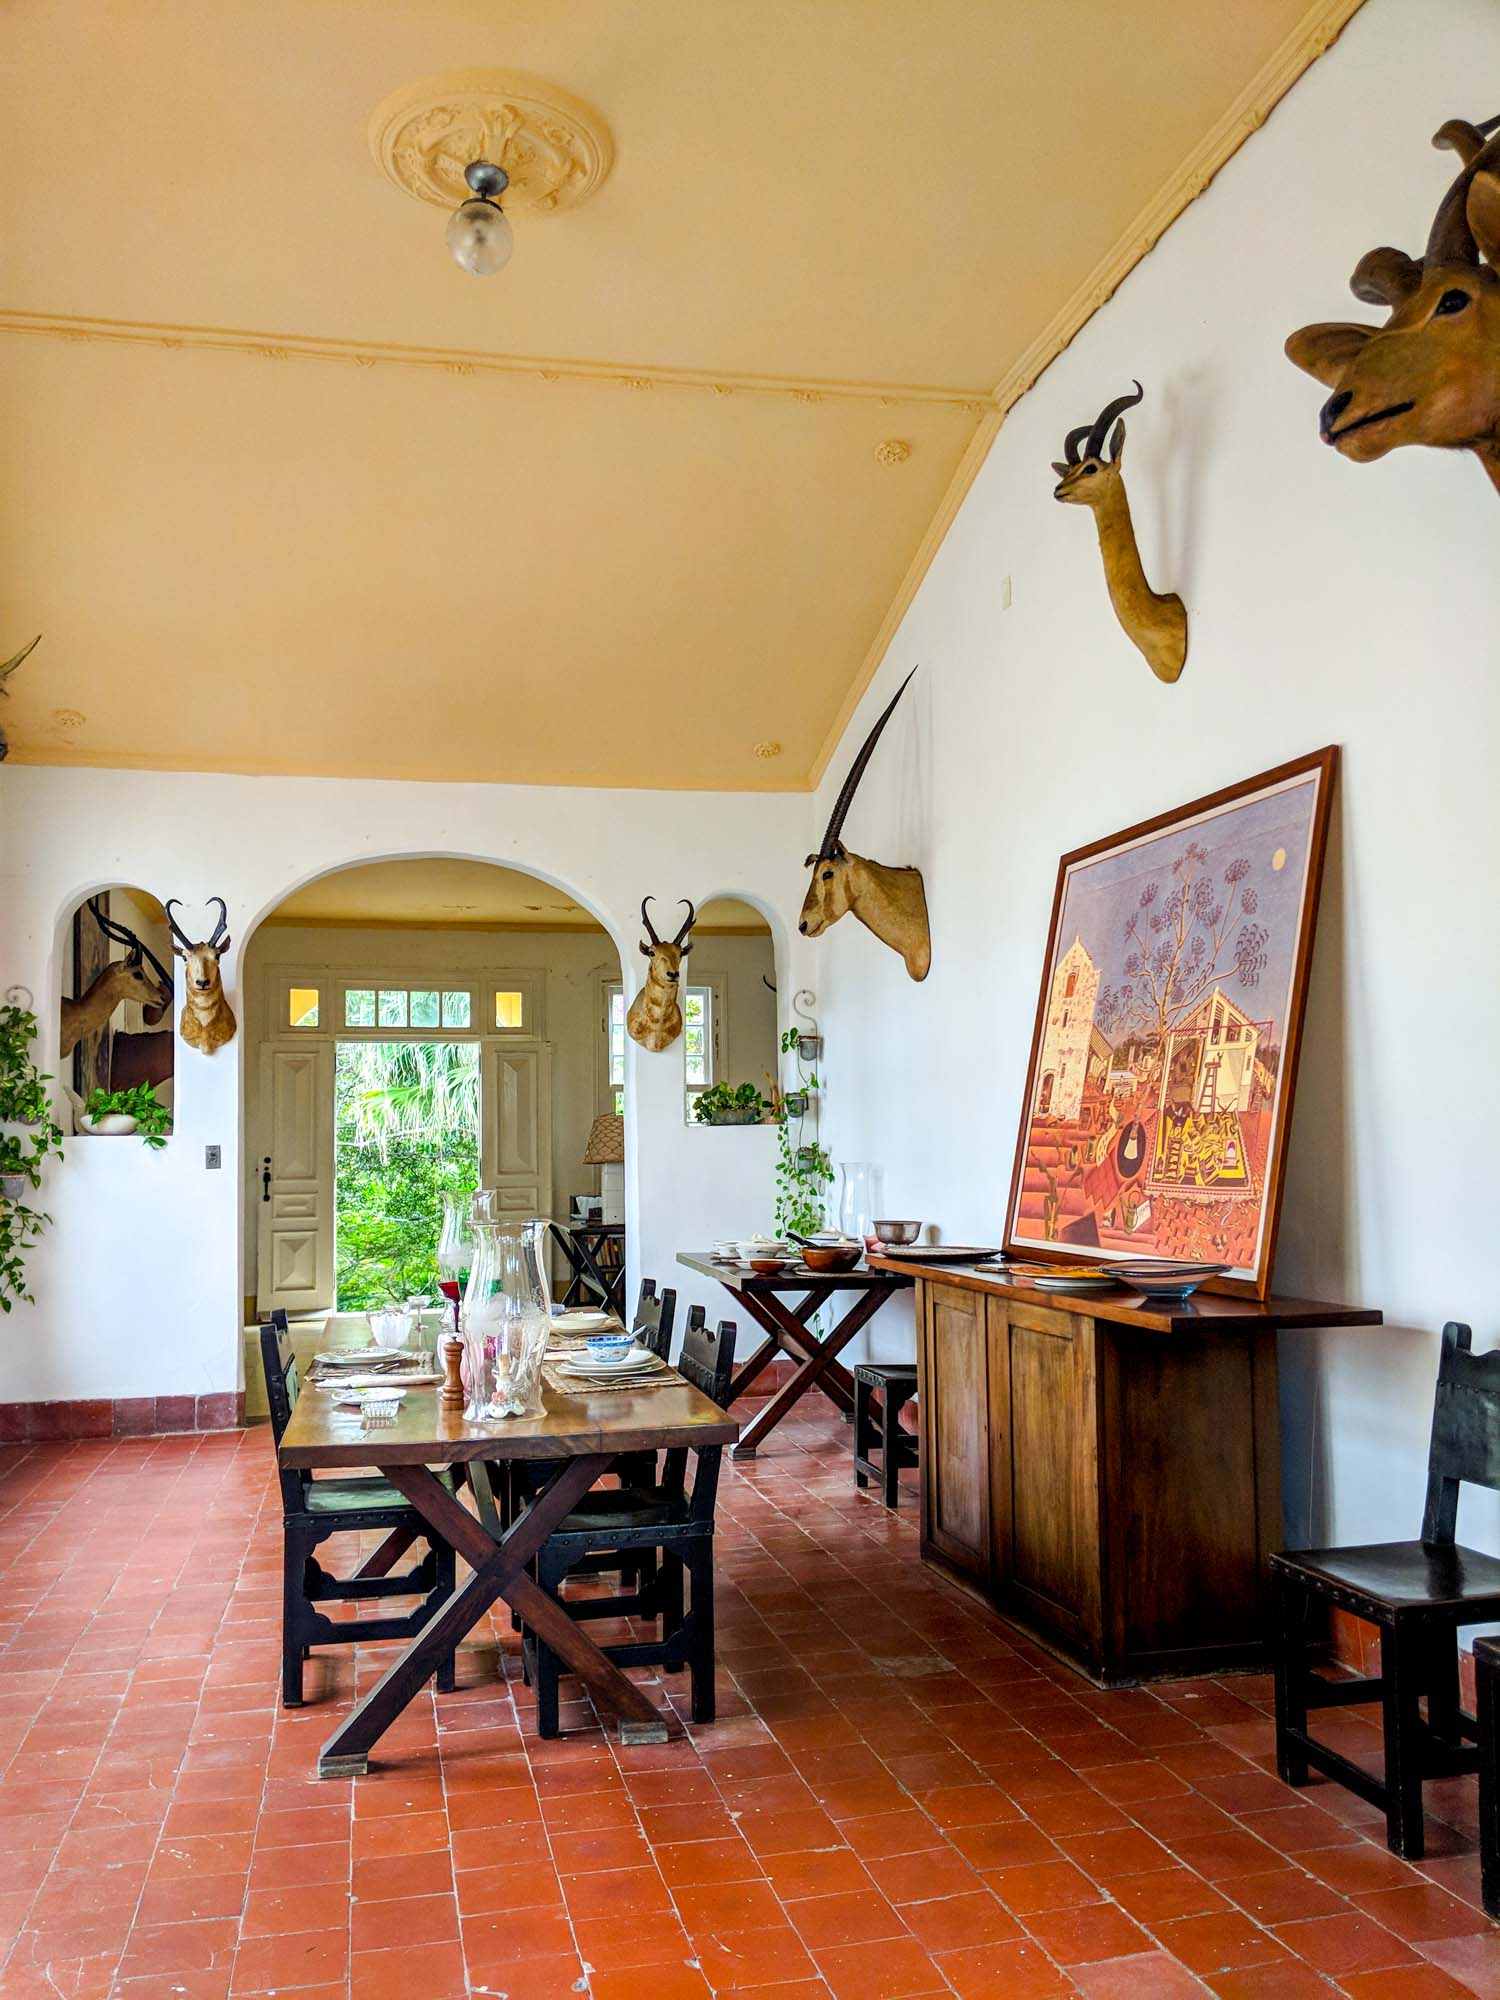 Finca Vigia in Havana is one of the tourist spots for Hemingway in Cuba.